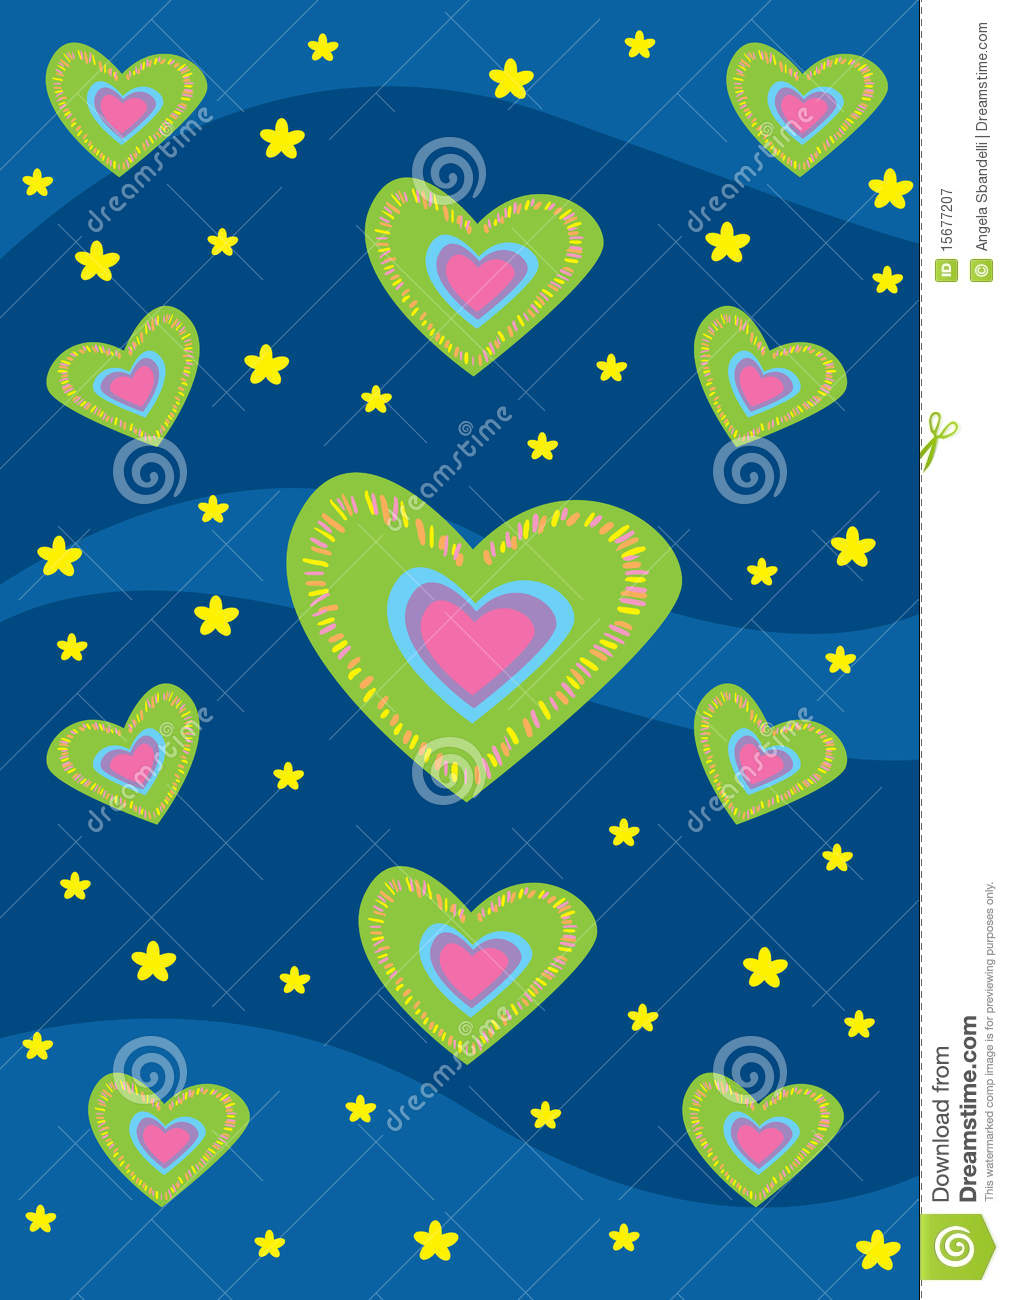 Hearts And Stars Background Texture Royalty Free Stock ...